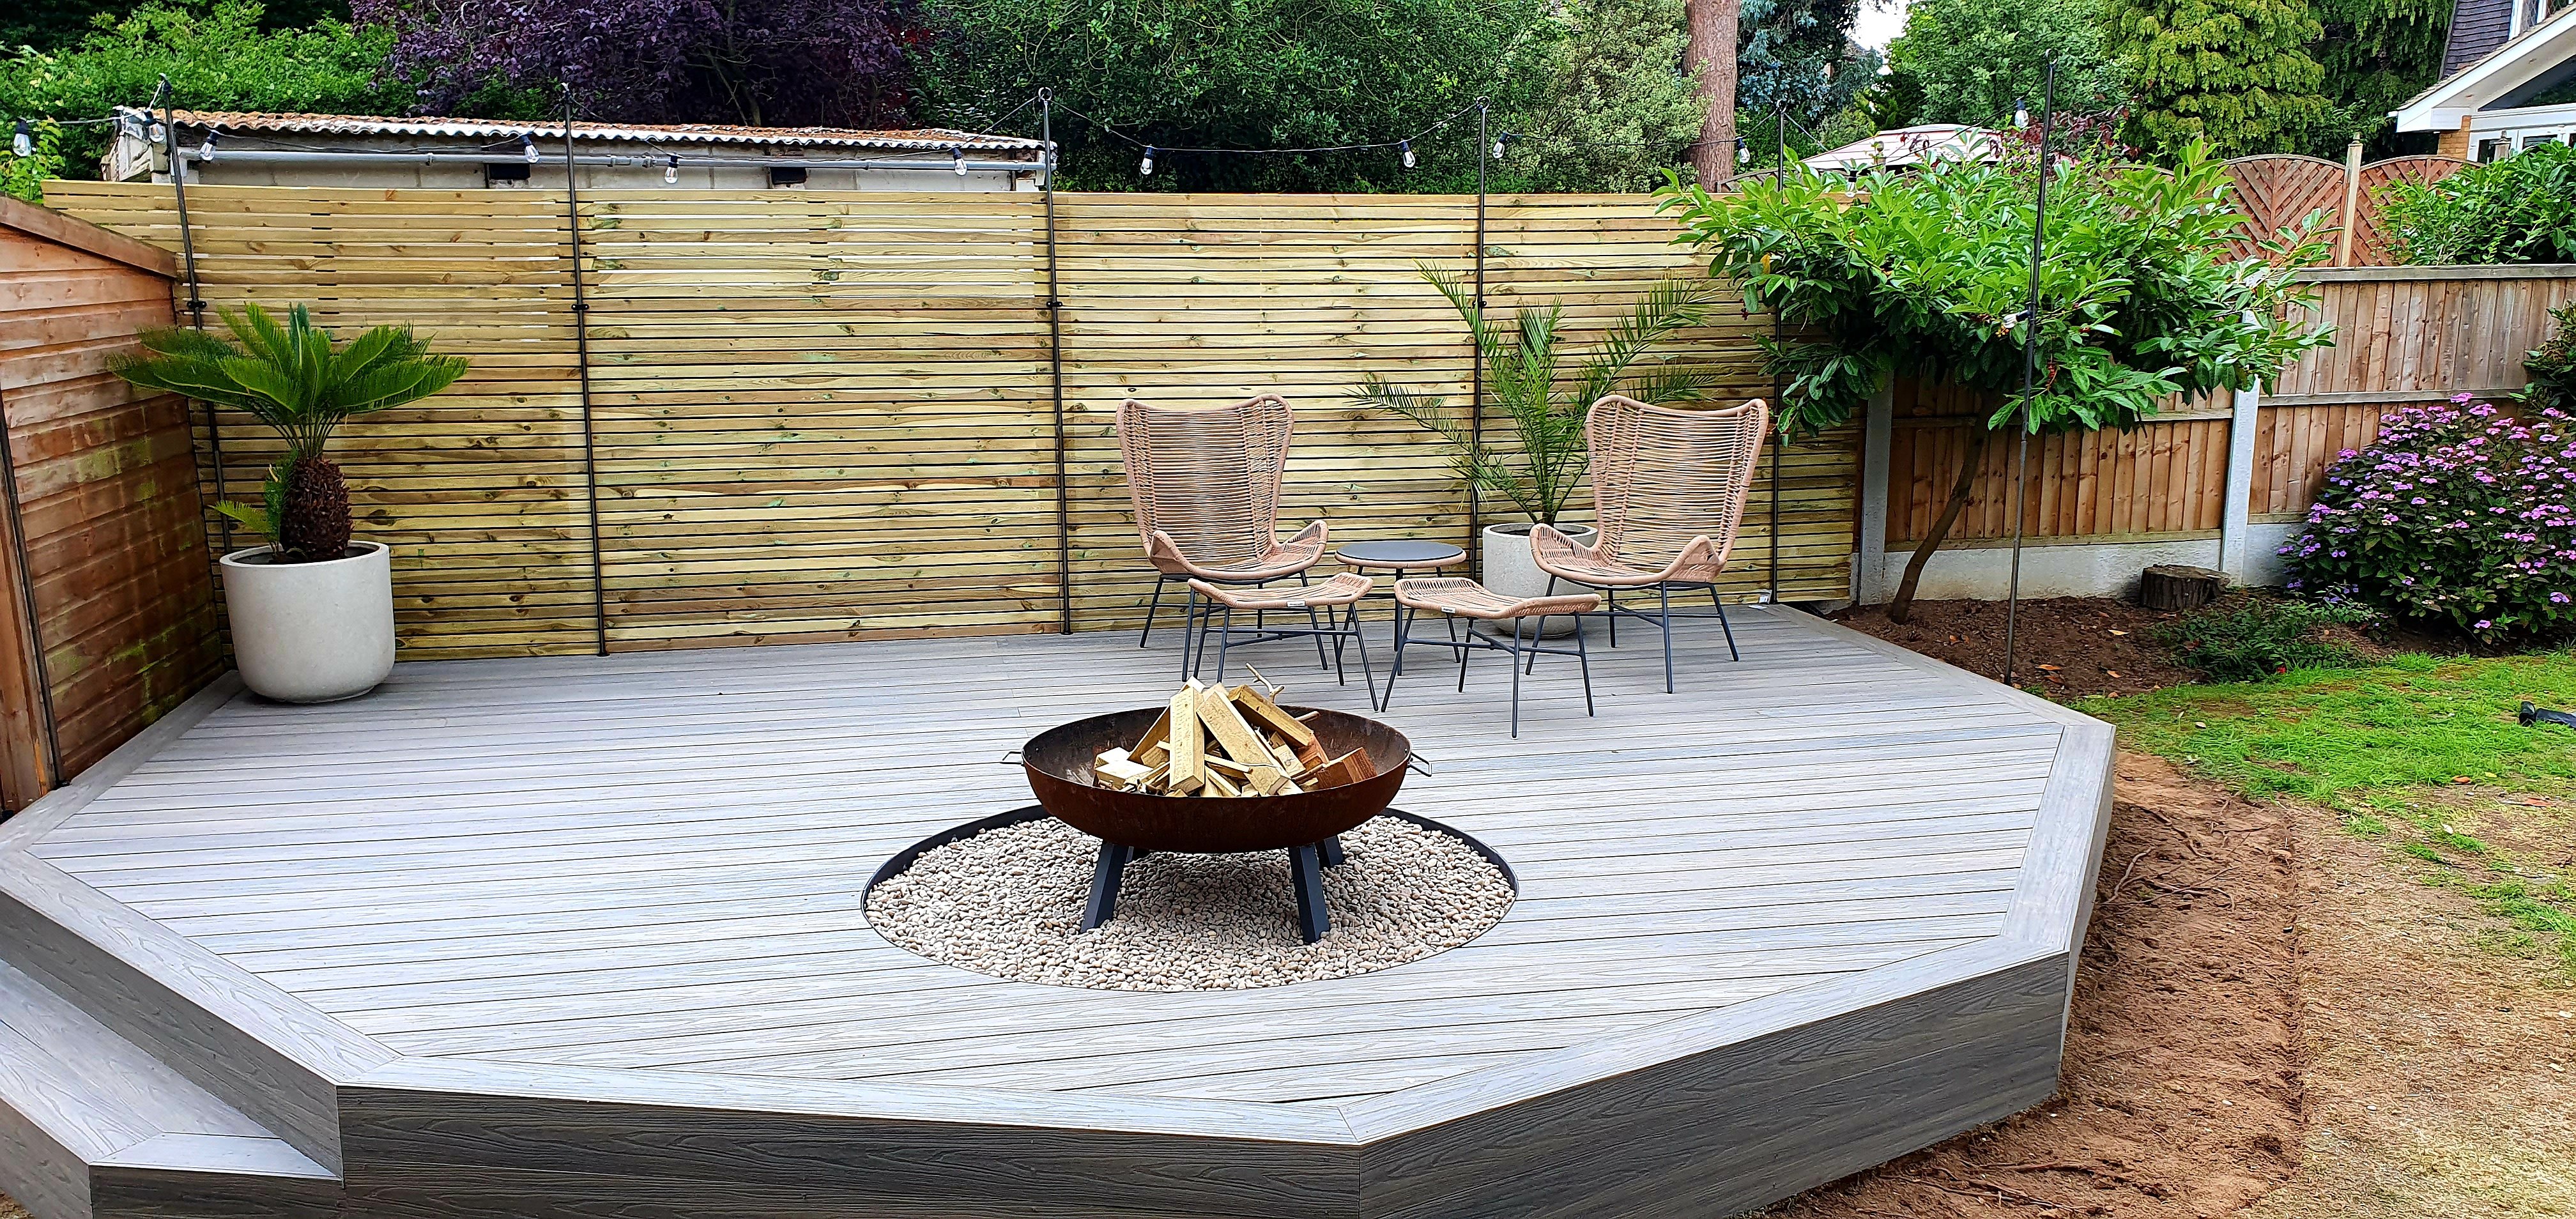 Composite decking in Essex